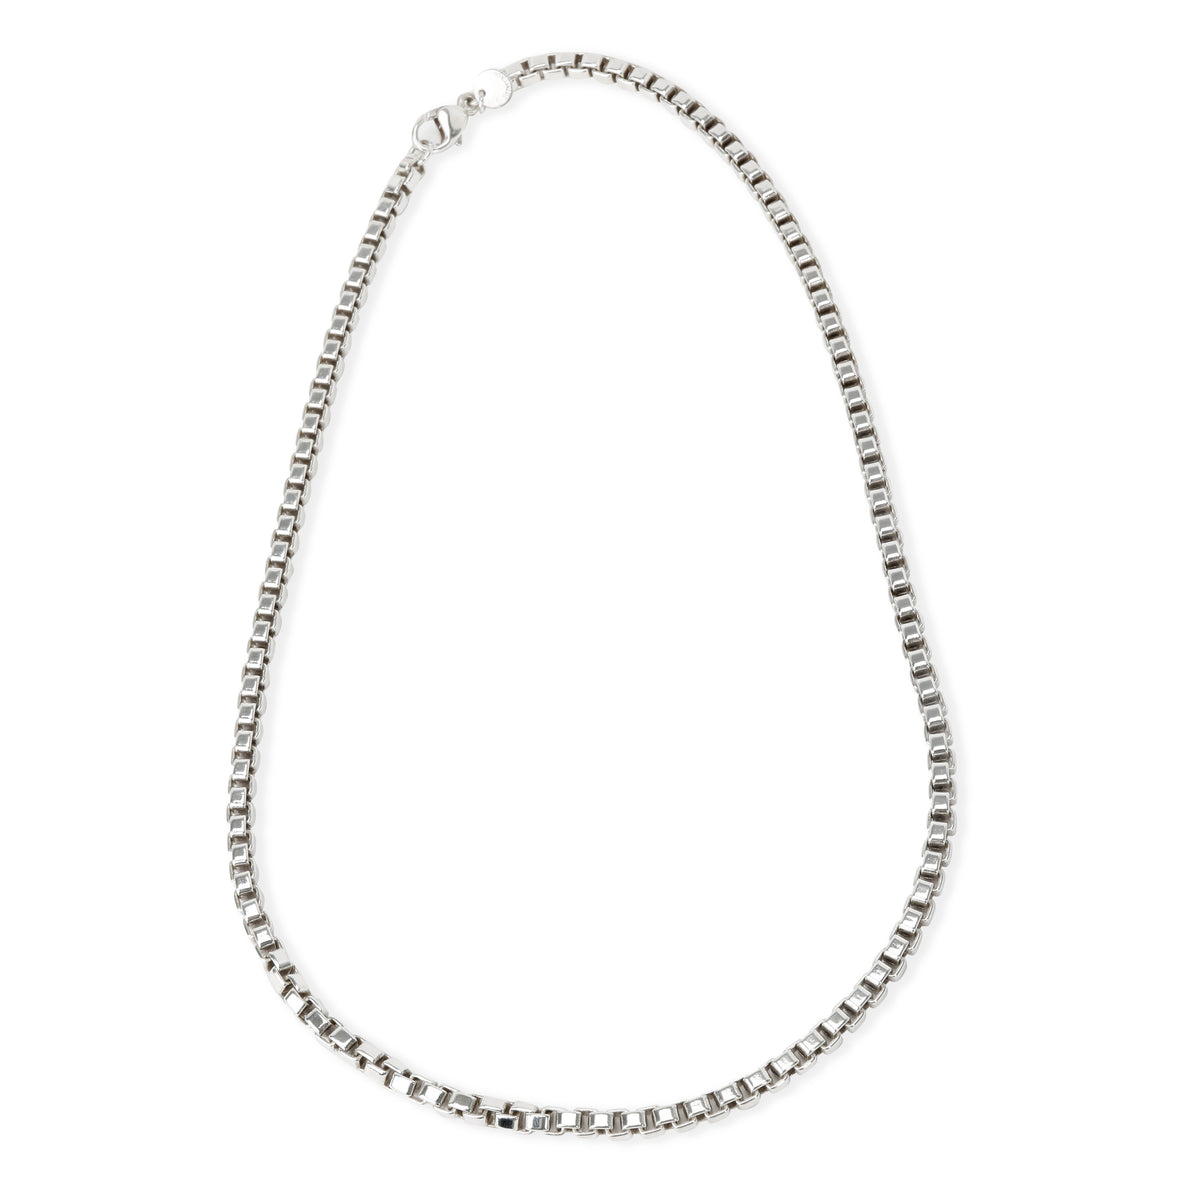 Tiffany & Co. Venetian Link Necklace in  Sterling Silver